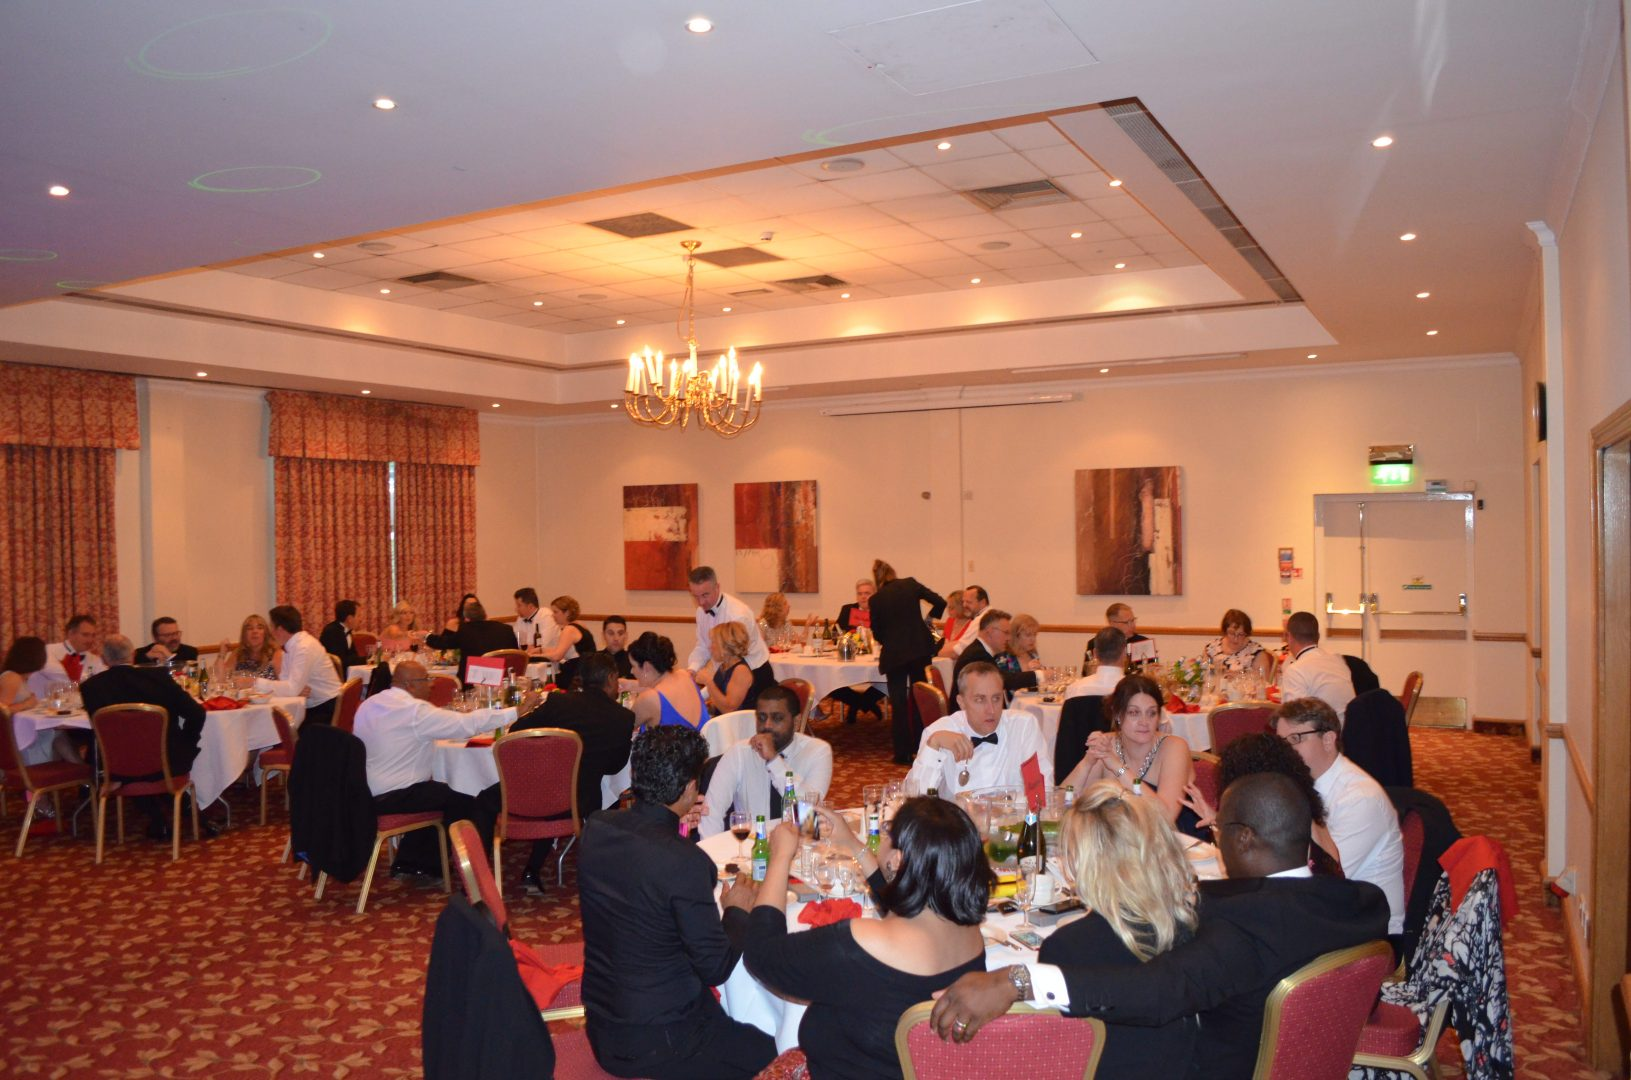 Parent's Ball at Quinton House School